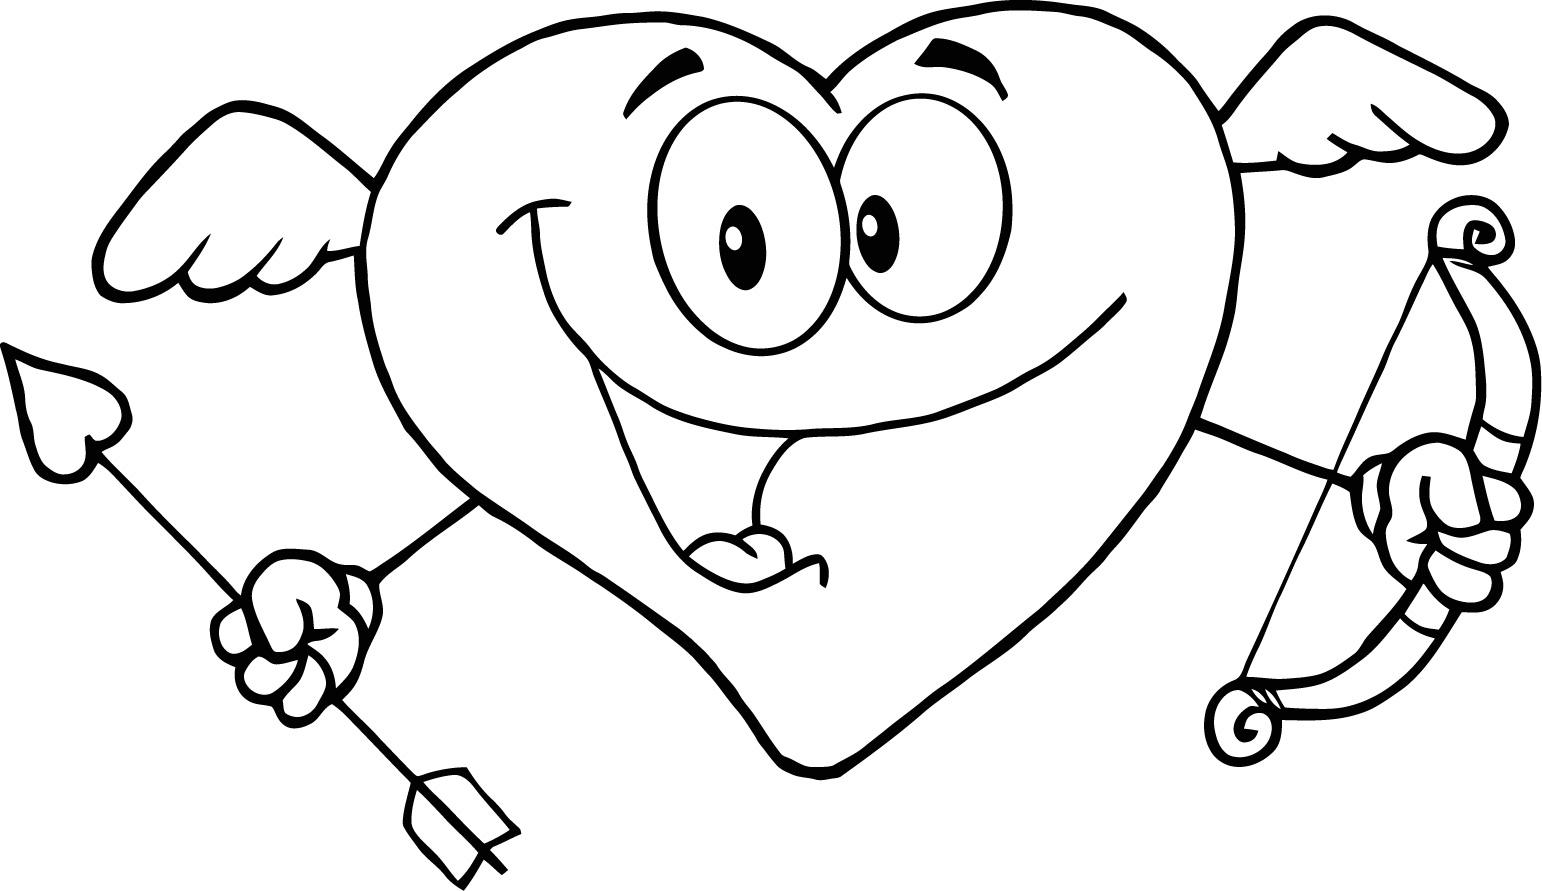 face to colour in free printable smiley face coloring pages for kids to face colour in